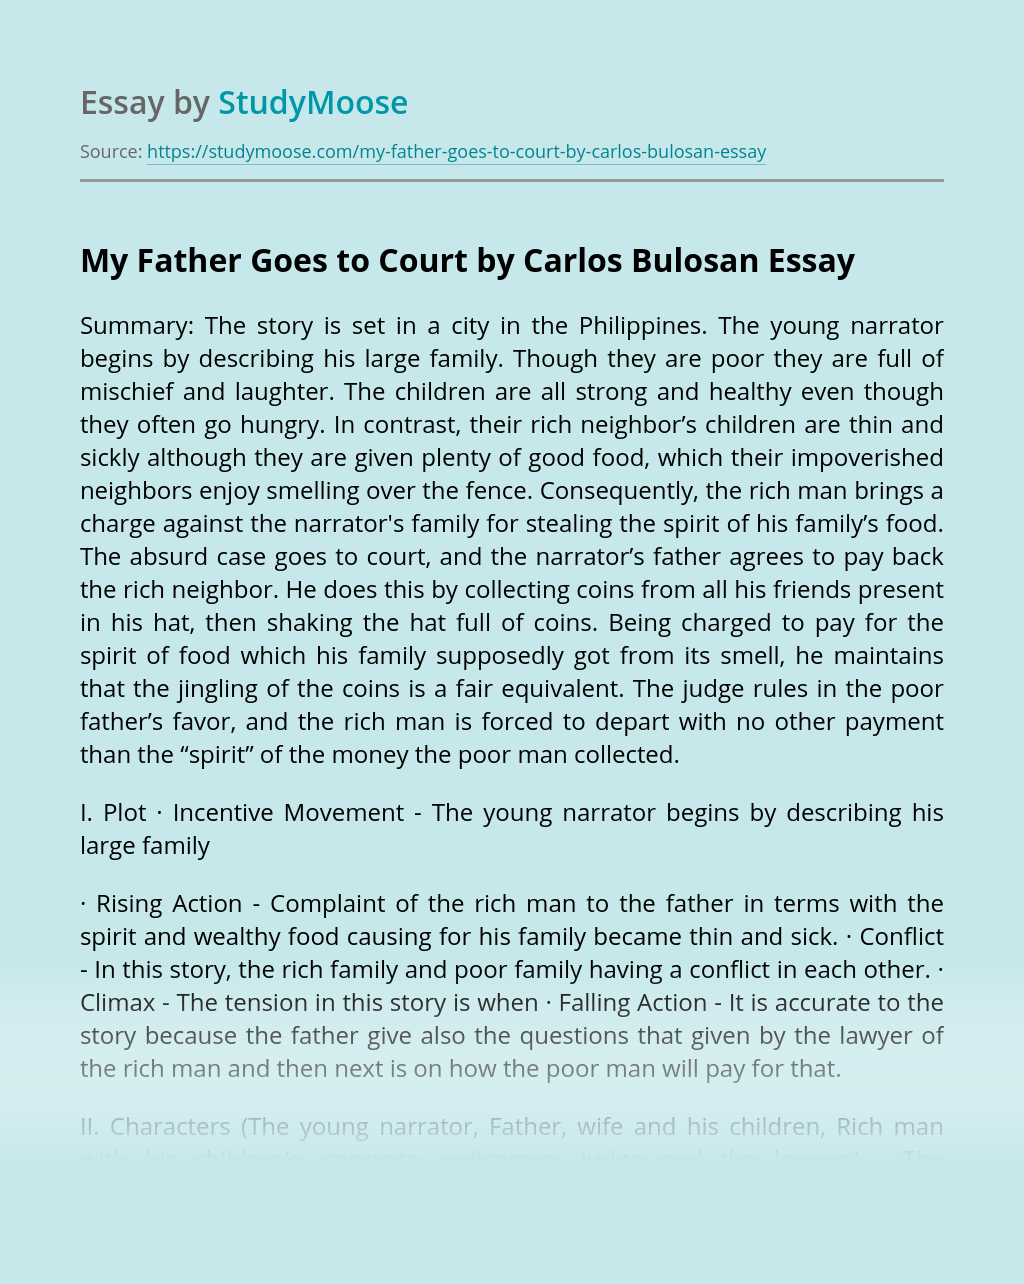 My Father Goes to Court by Carlos Bulosan